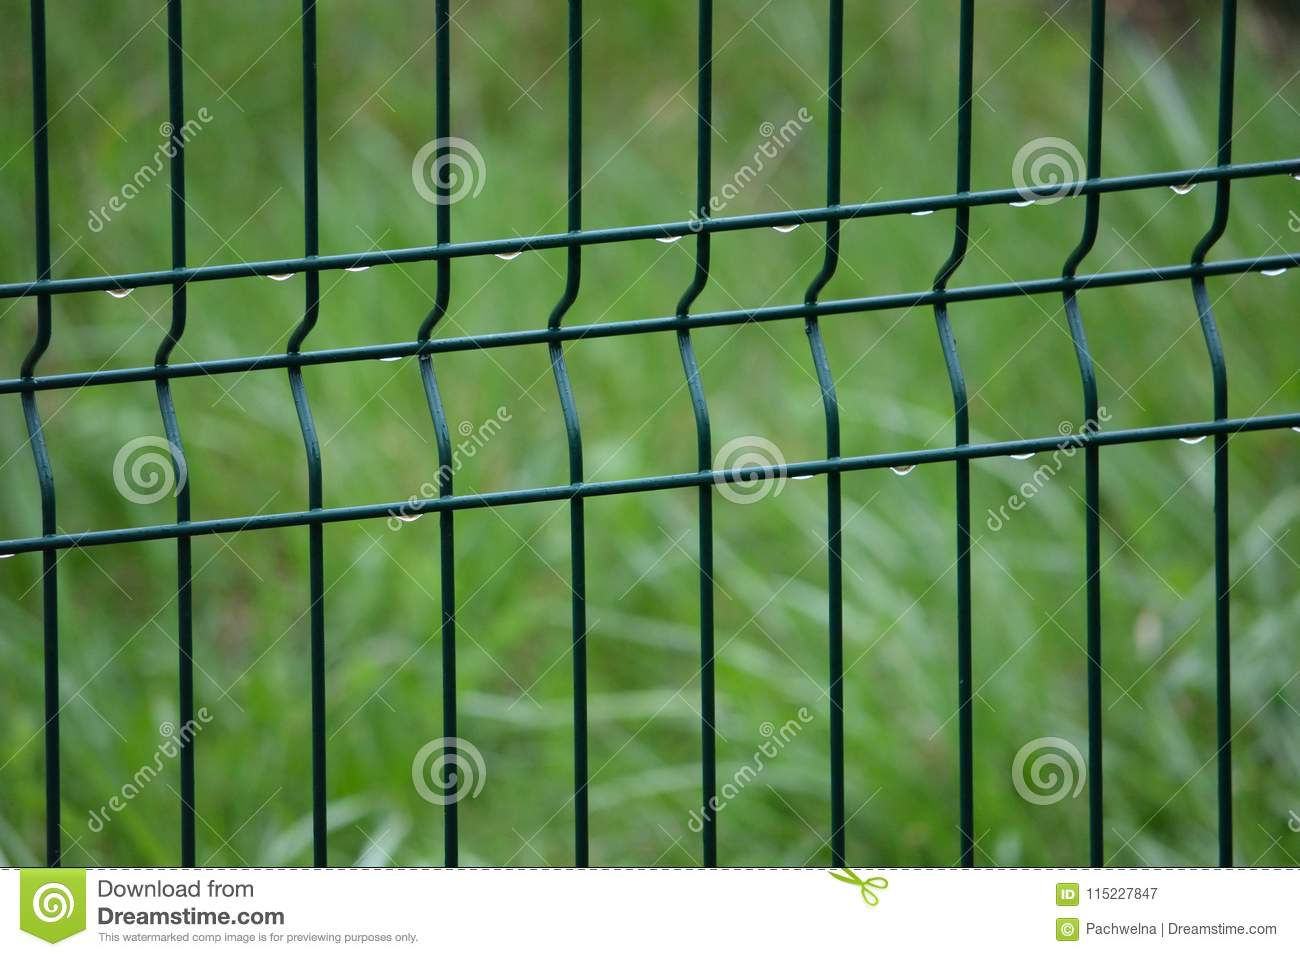 spring captured grid fence with raindrops and blurred green